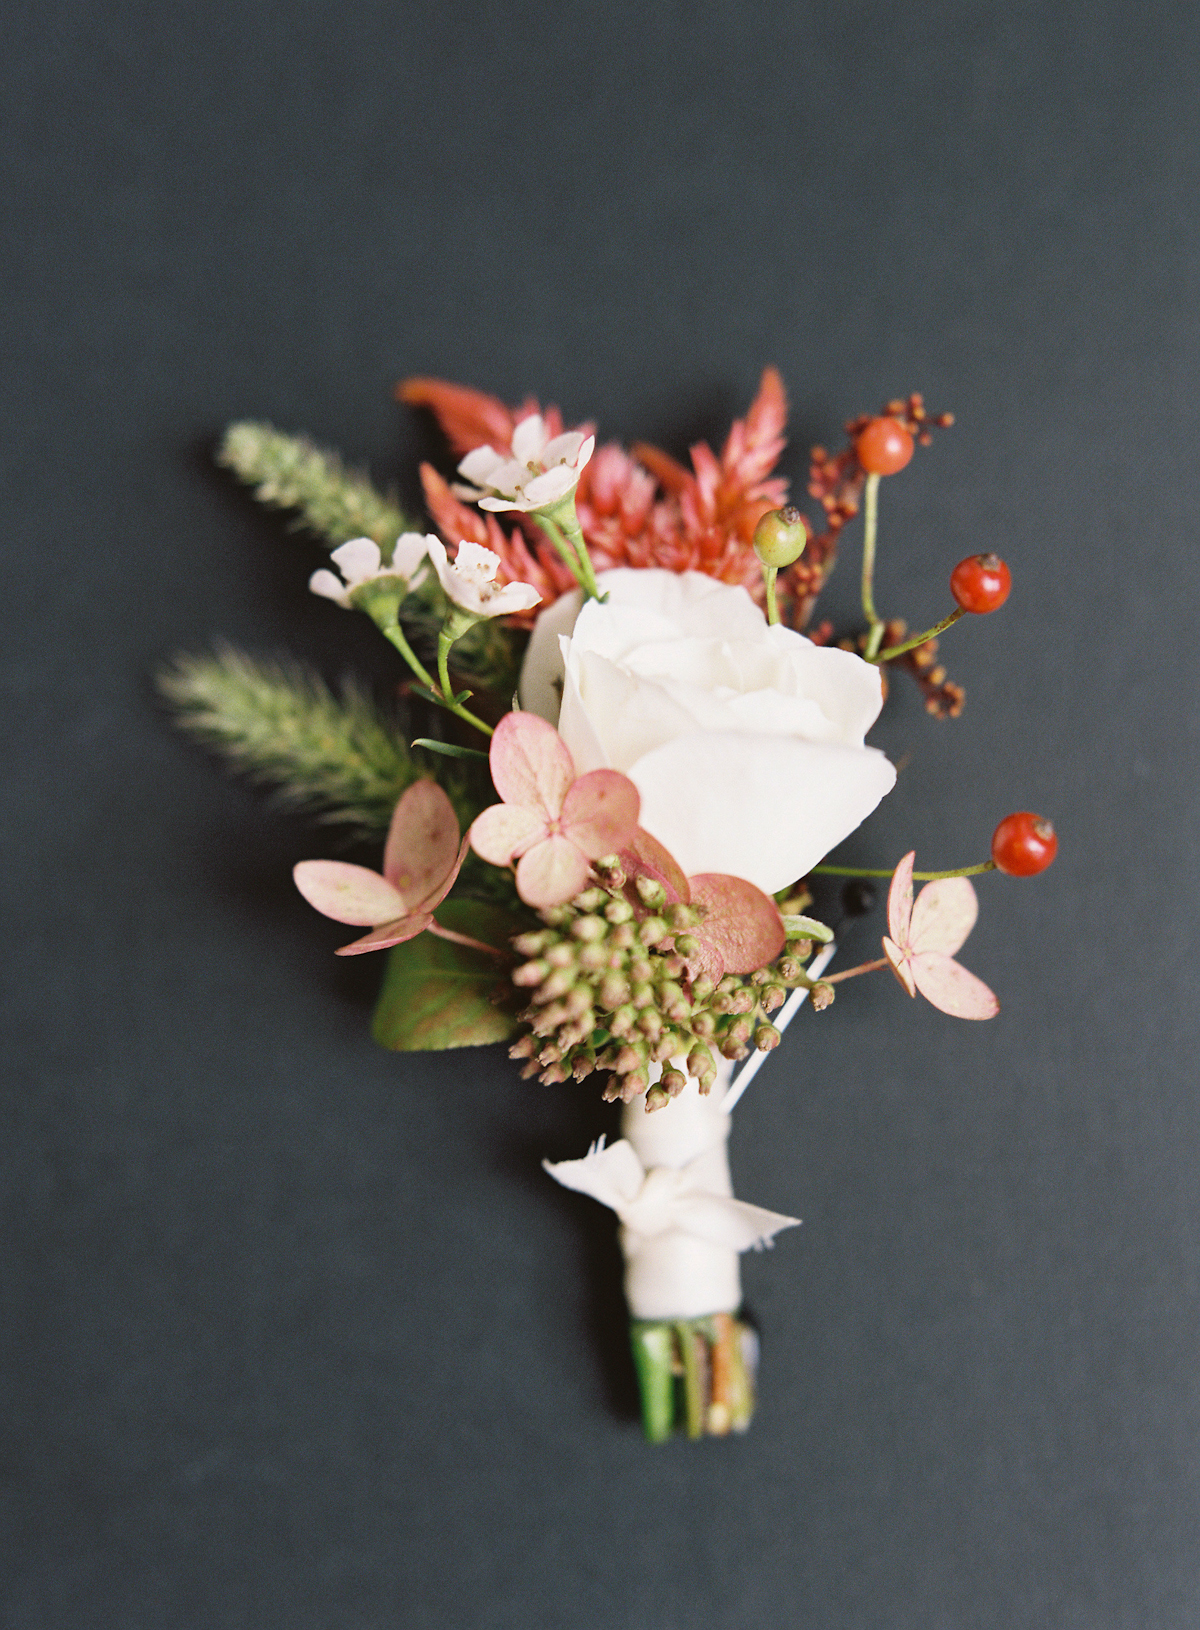 Plaza wedding boutonniere with rose and red berries